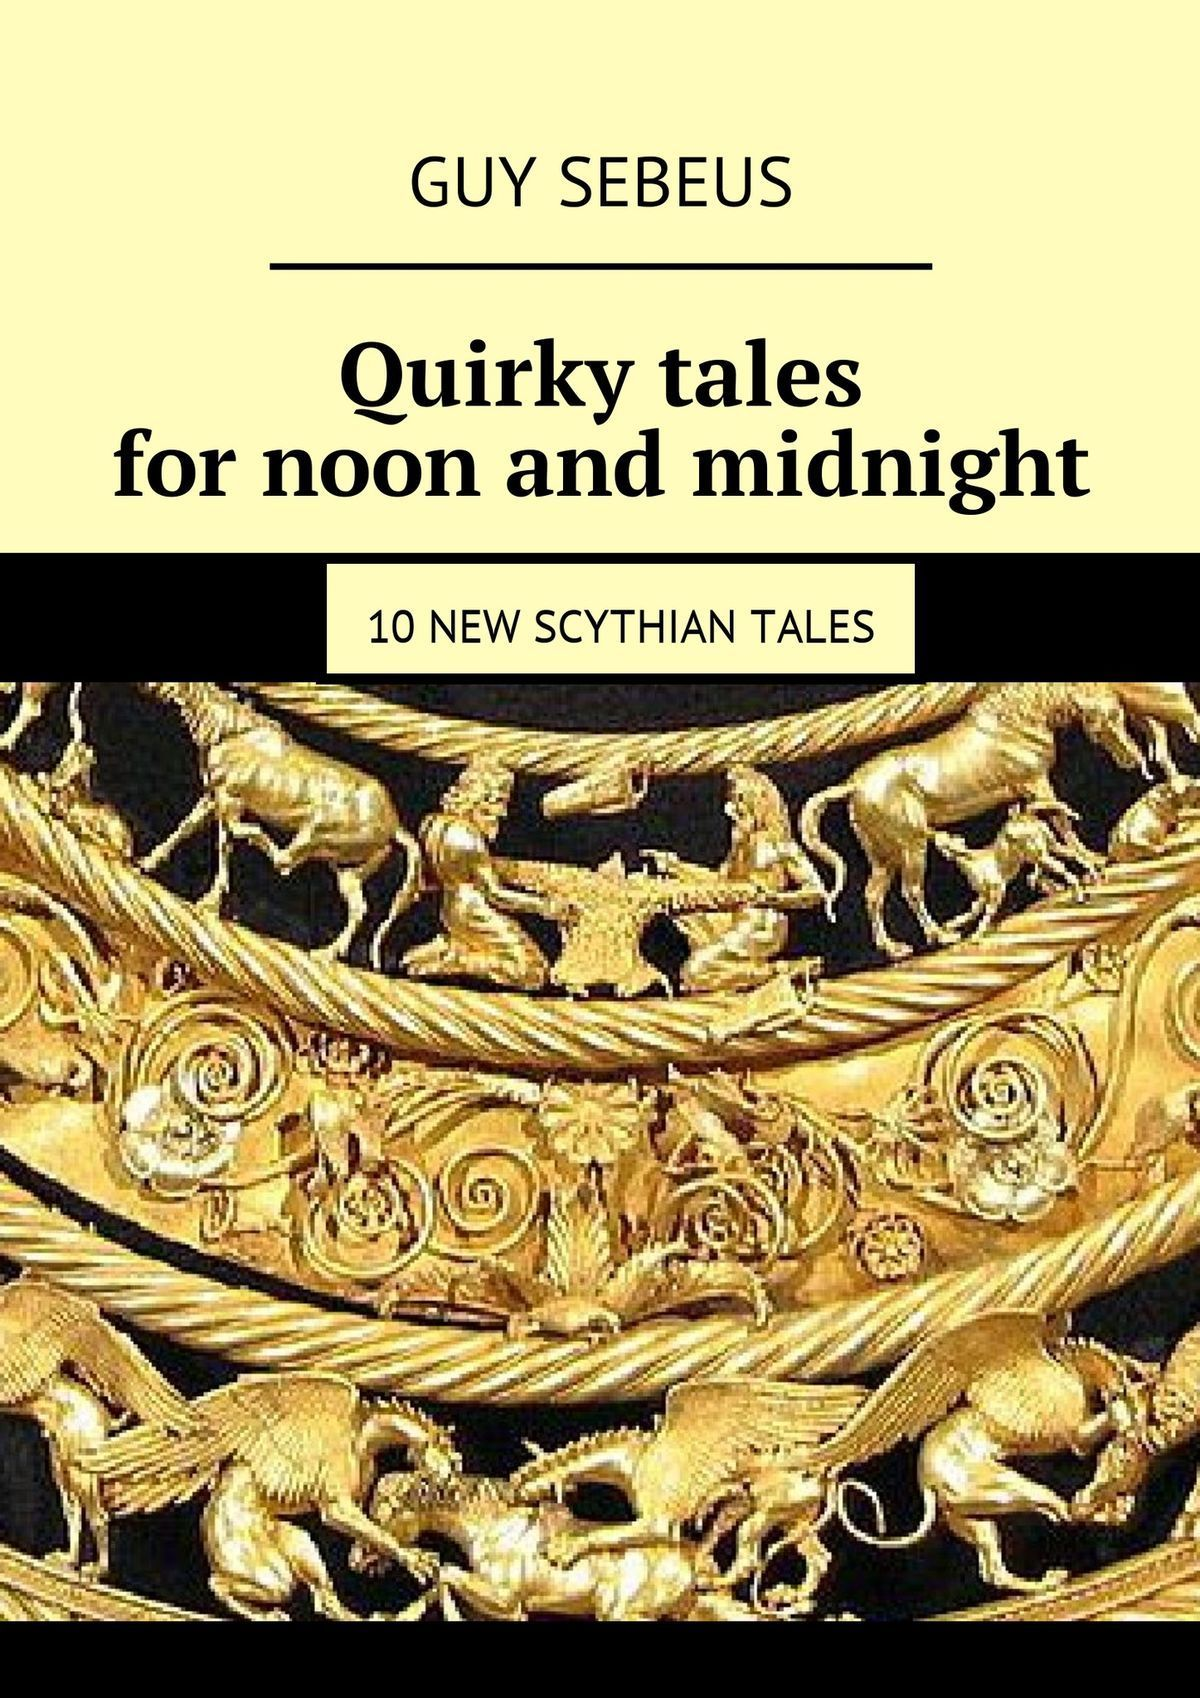 Guy Sebeus Quirky tales for noon and midnight. 10 new Scythian tales киплинг р plain tales from the hills простые рассказы с гор